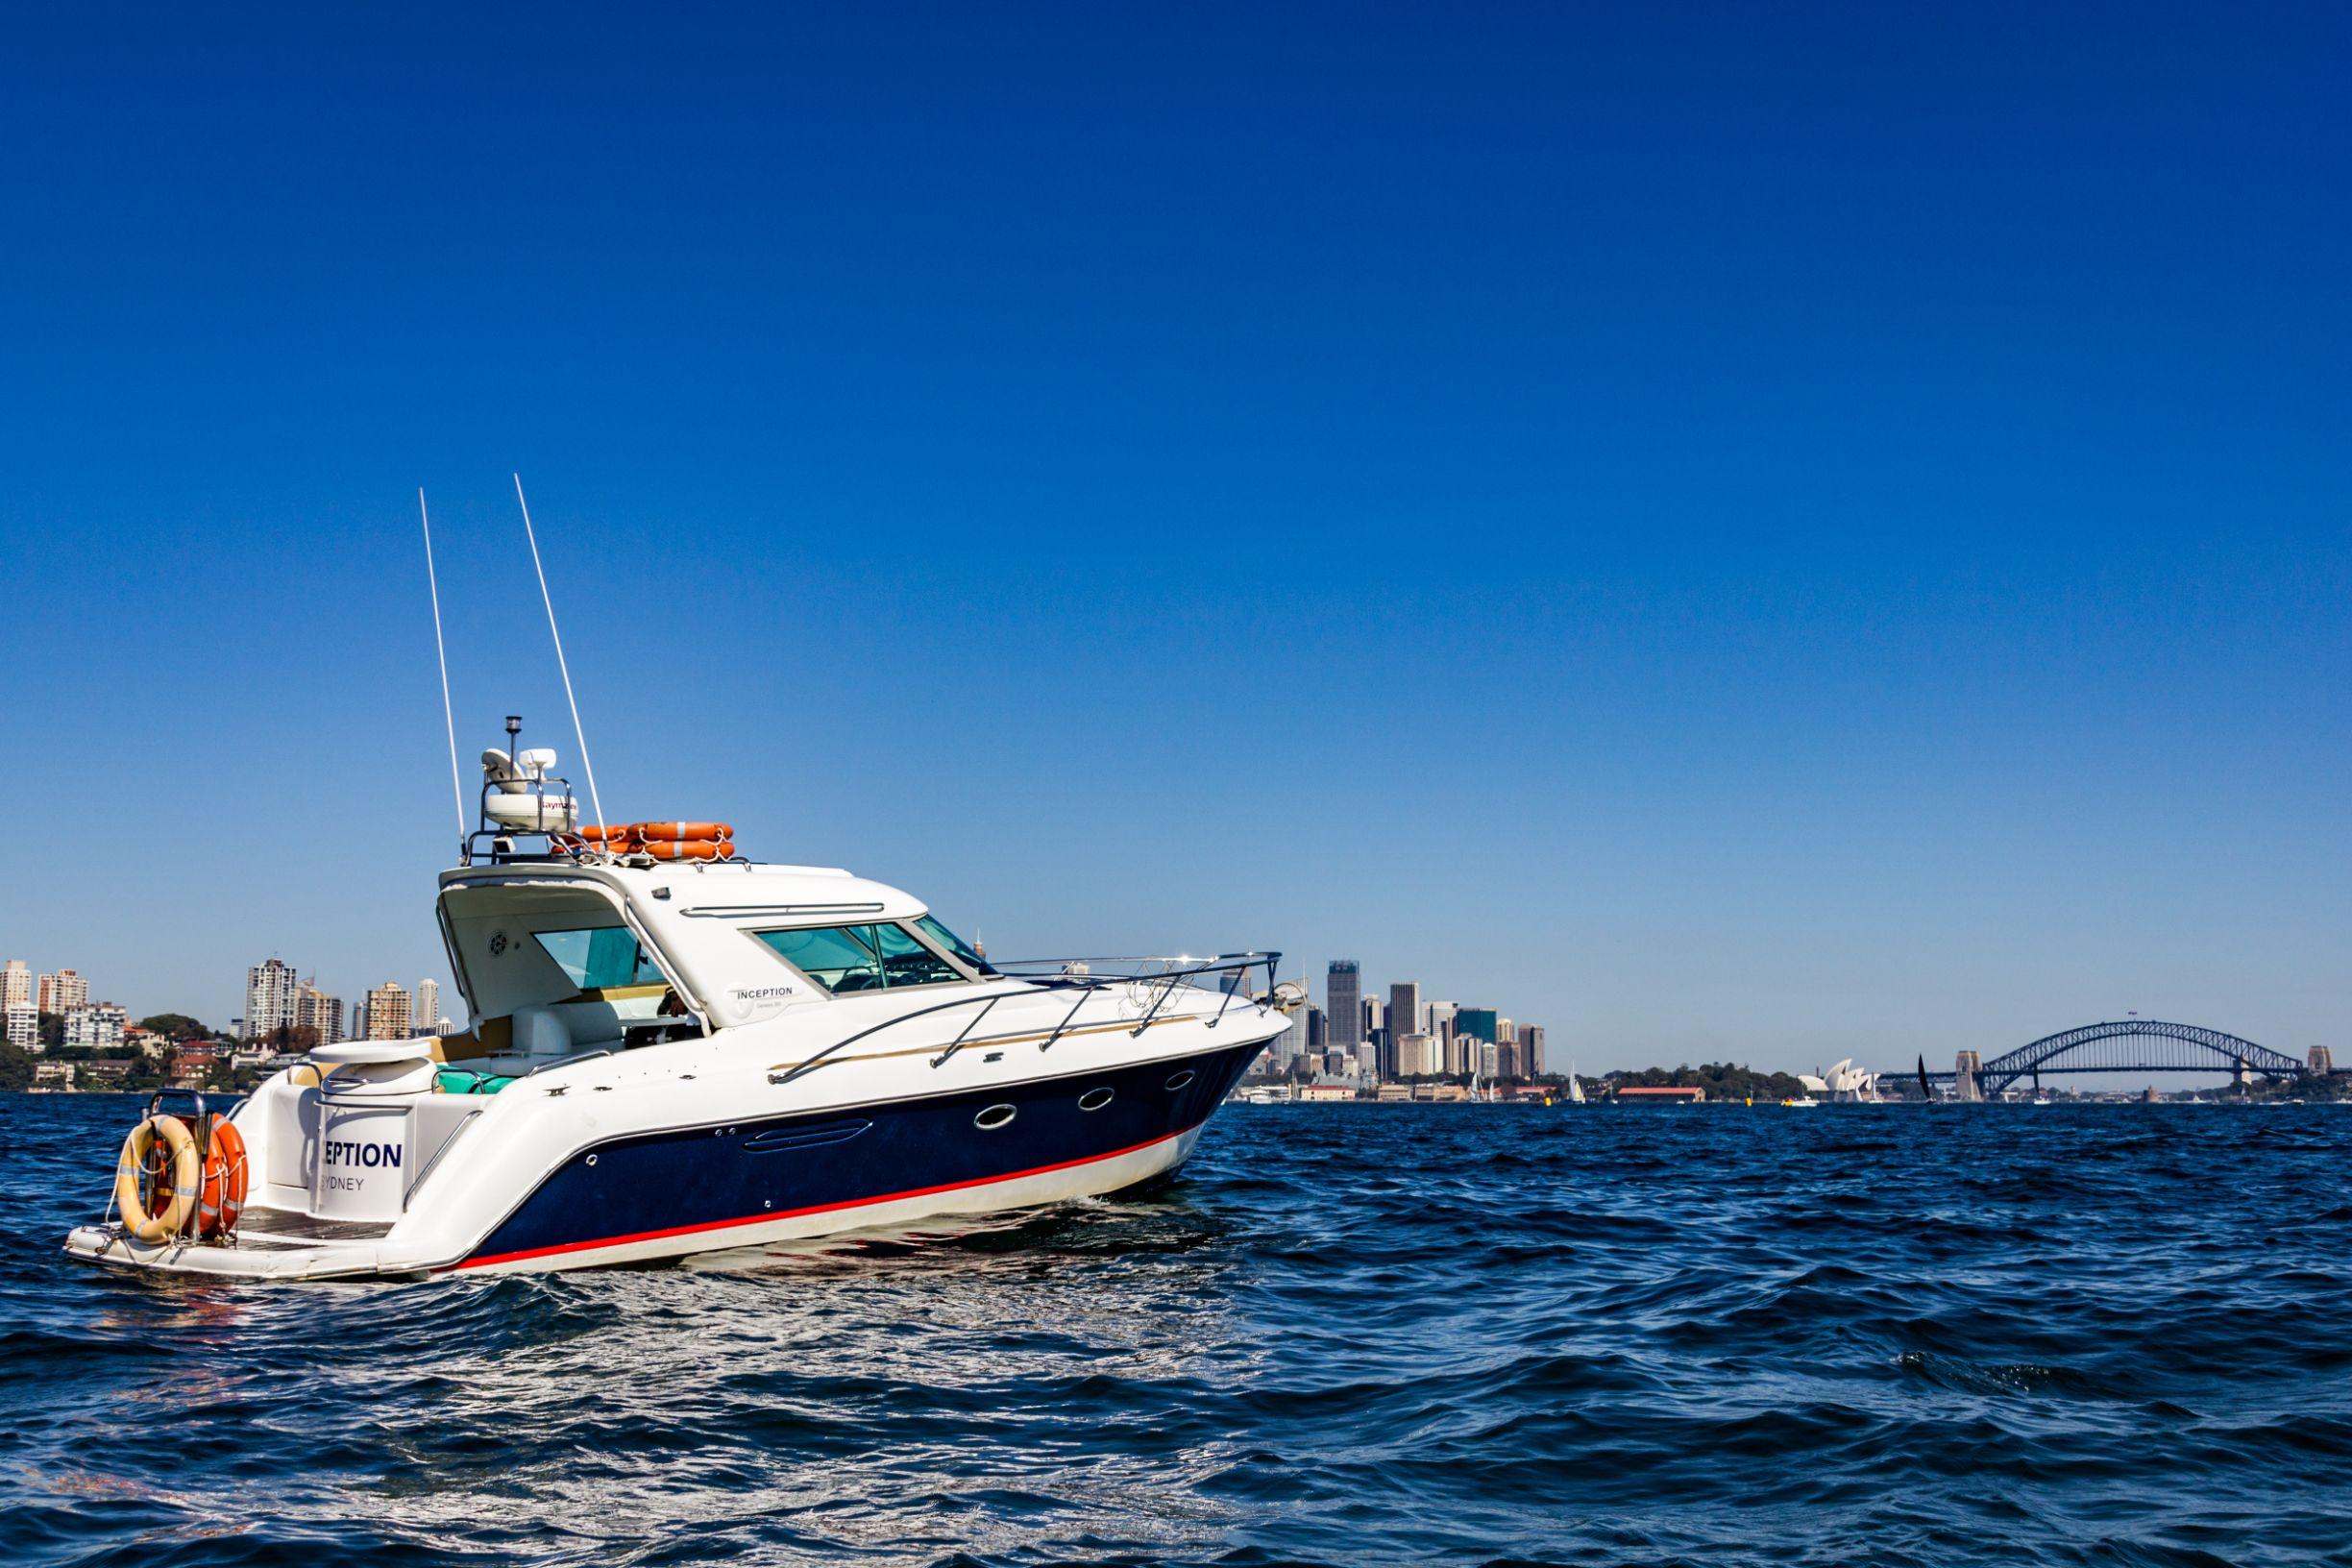 Inception - Zip around Sydney in style on this modern sports cruiser for small groups.